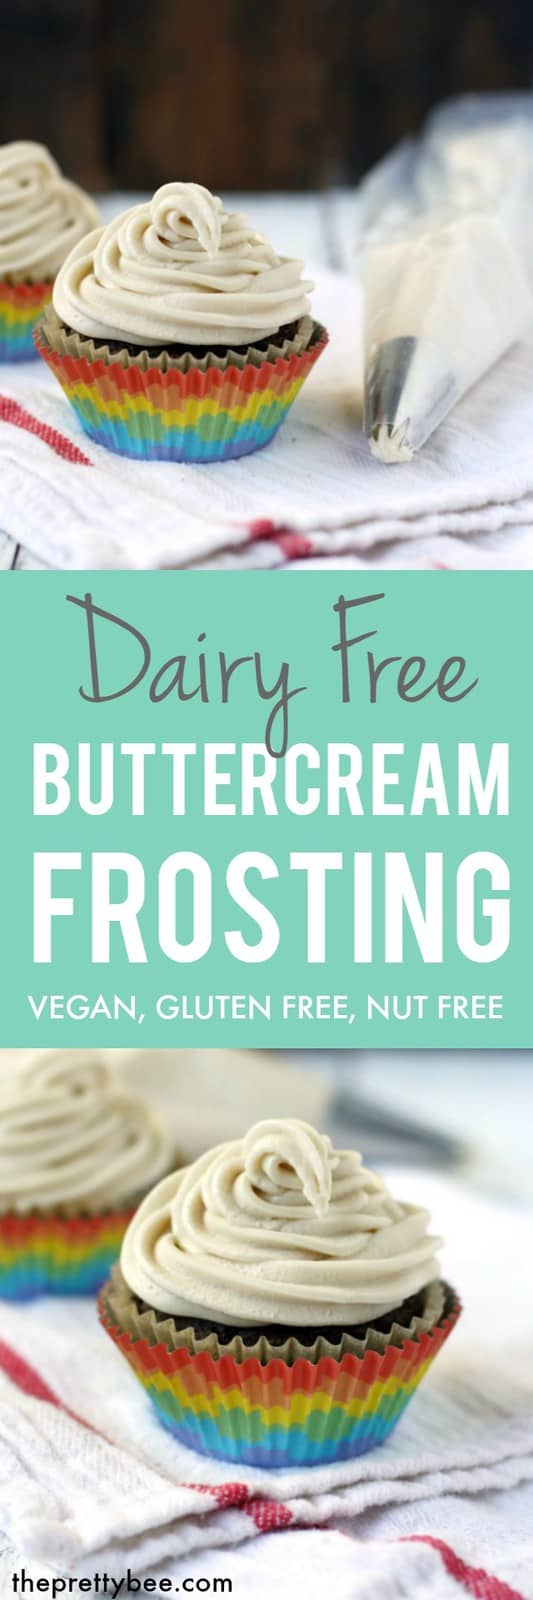 This dairy free buttercream frosting is smooth, creamy, and so decadent!